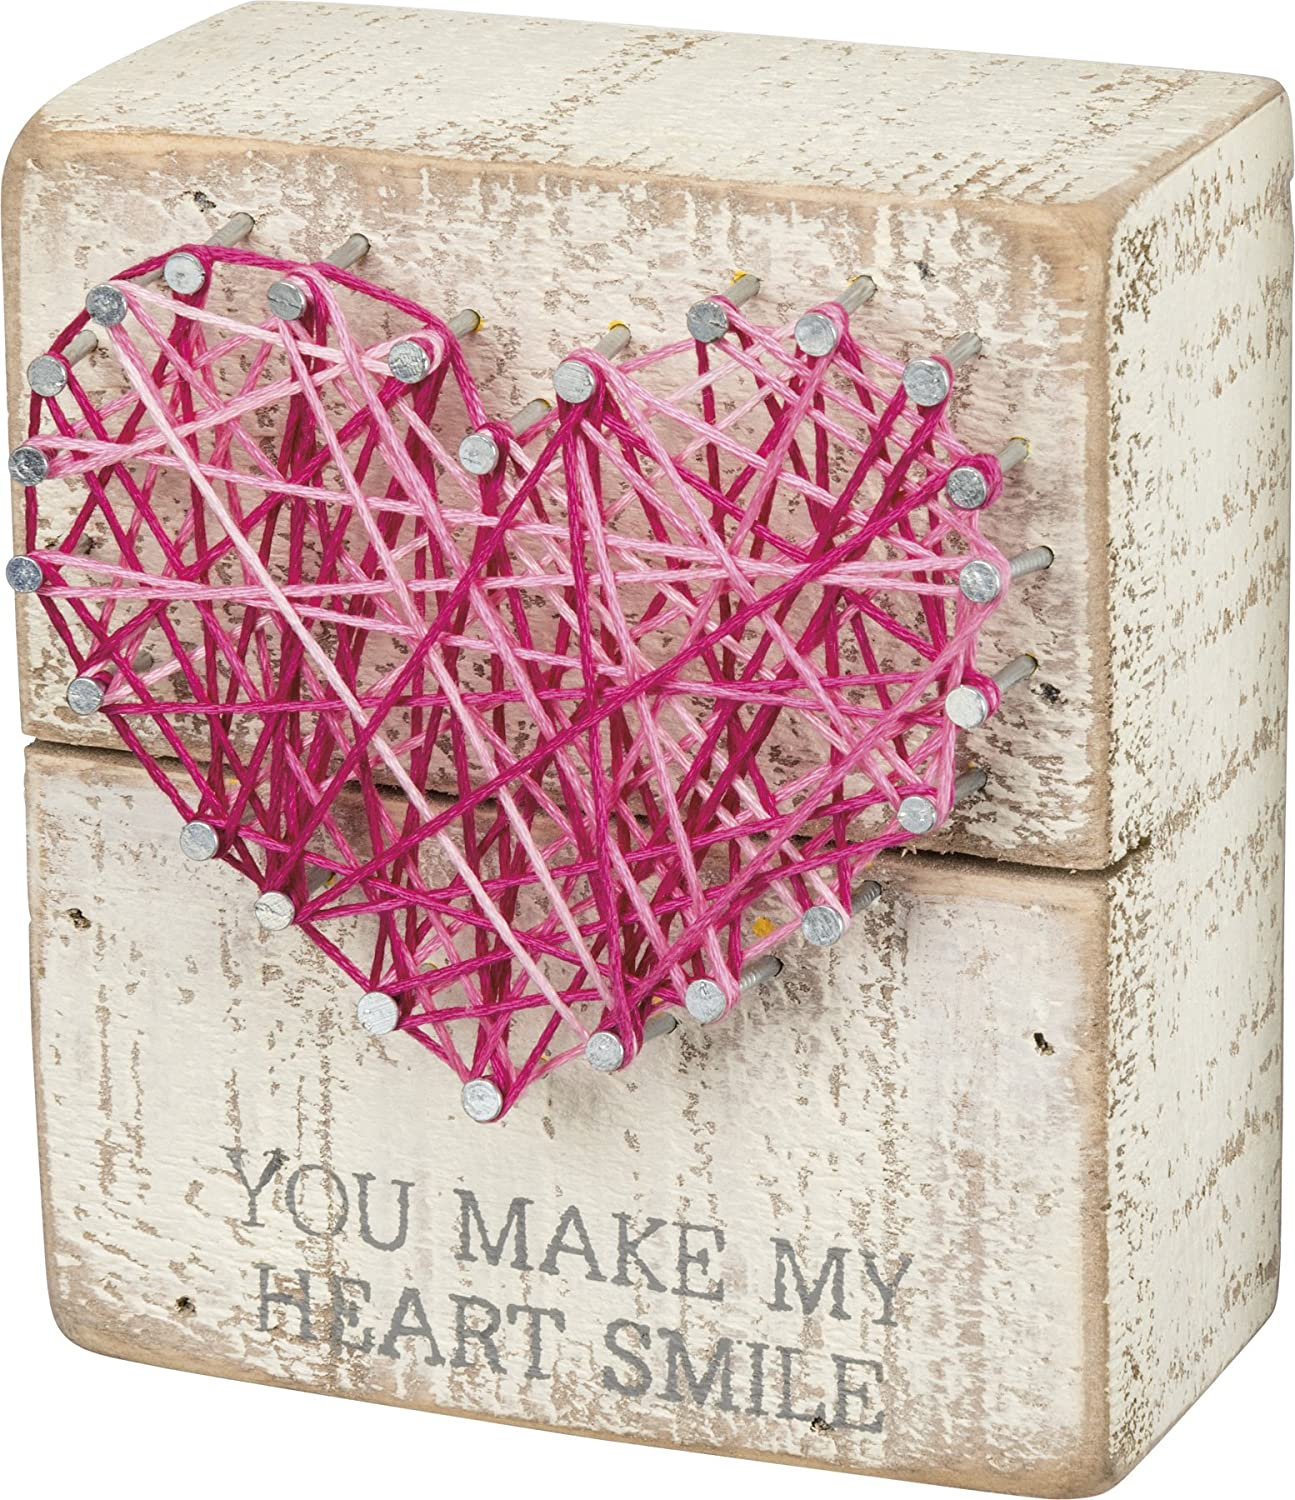 Primitives by Kathy String Art Box Sign, 3.5 x 4-Inches